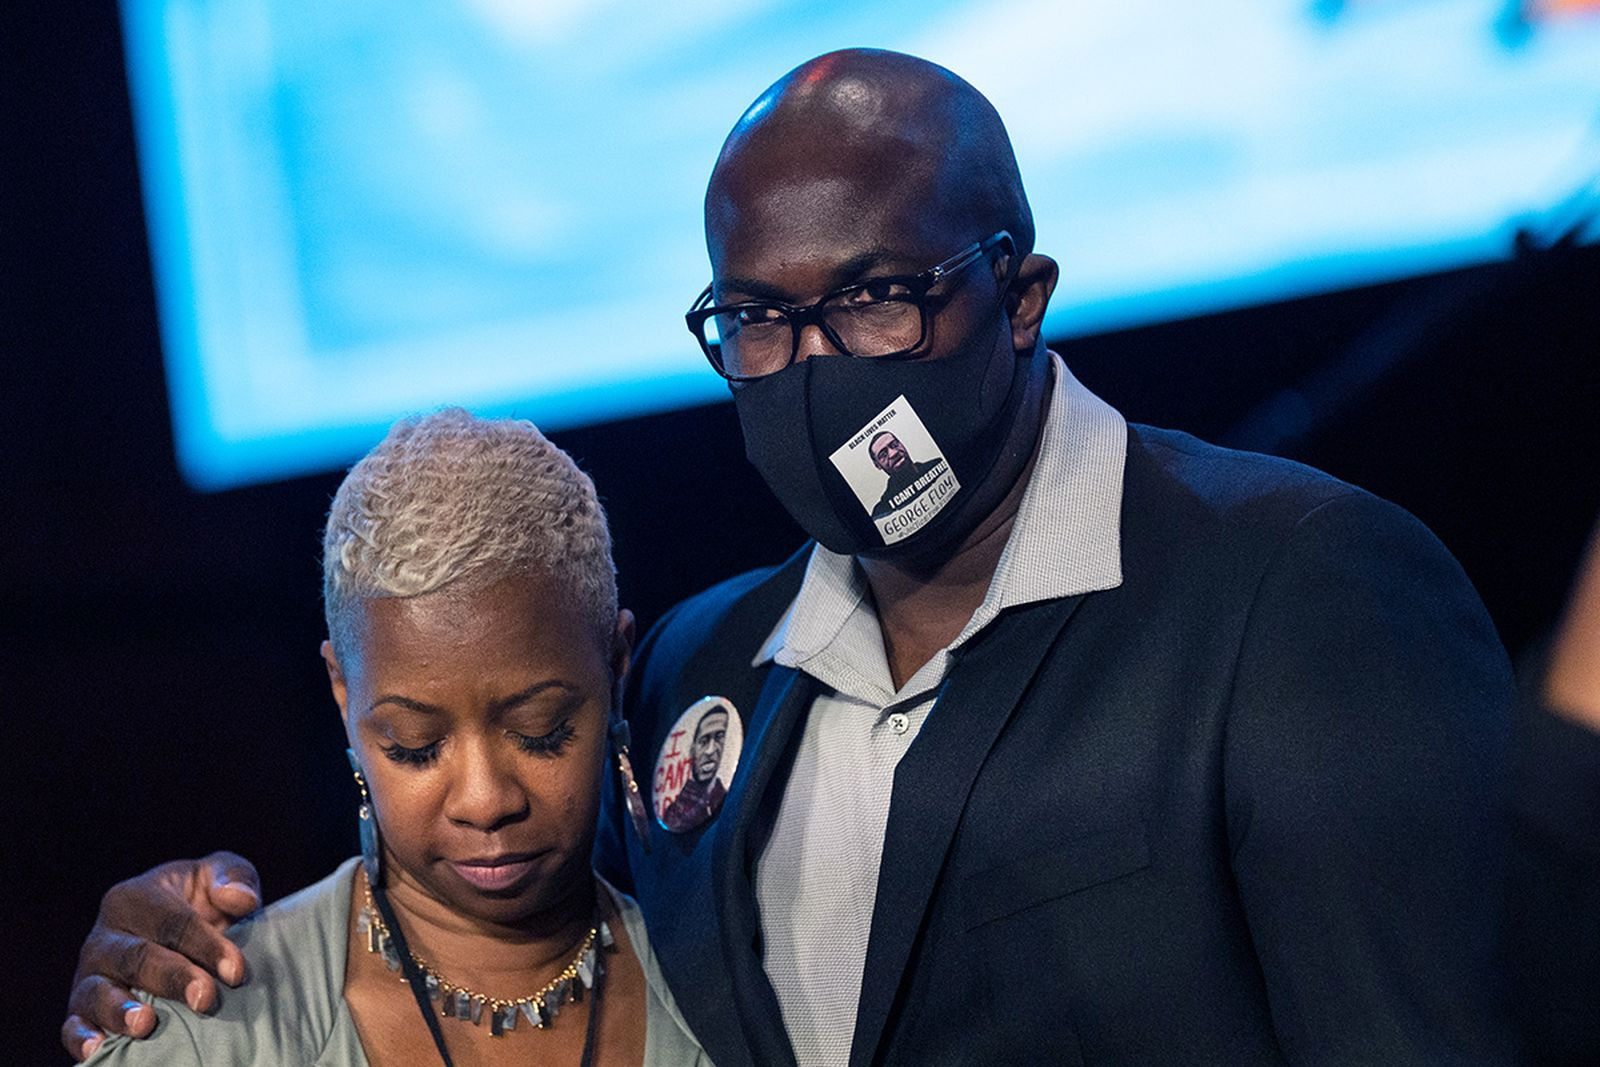 Philonise Floyd, brother of George Floyd, embrace each other during a memorial service